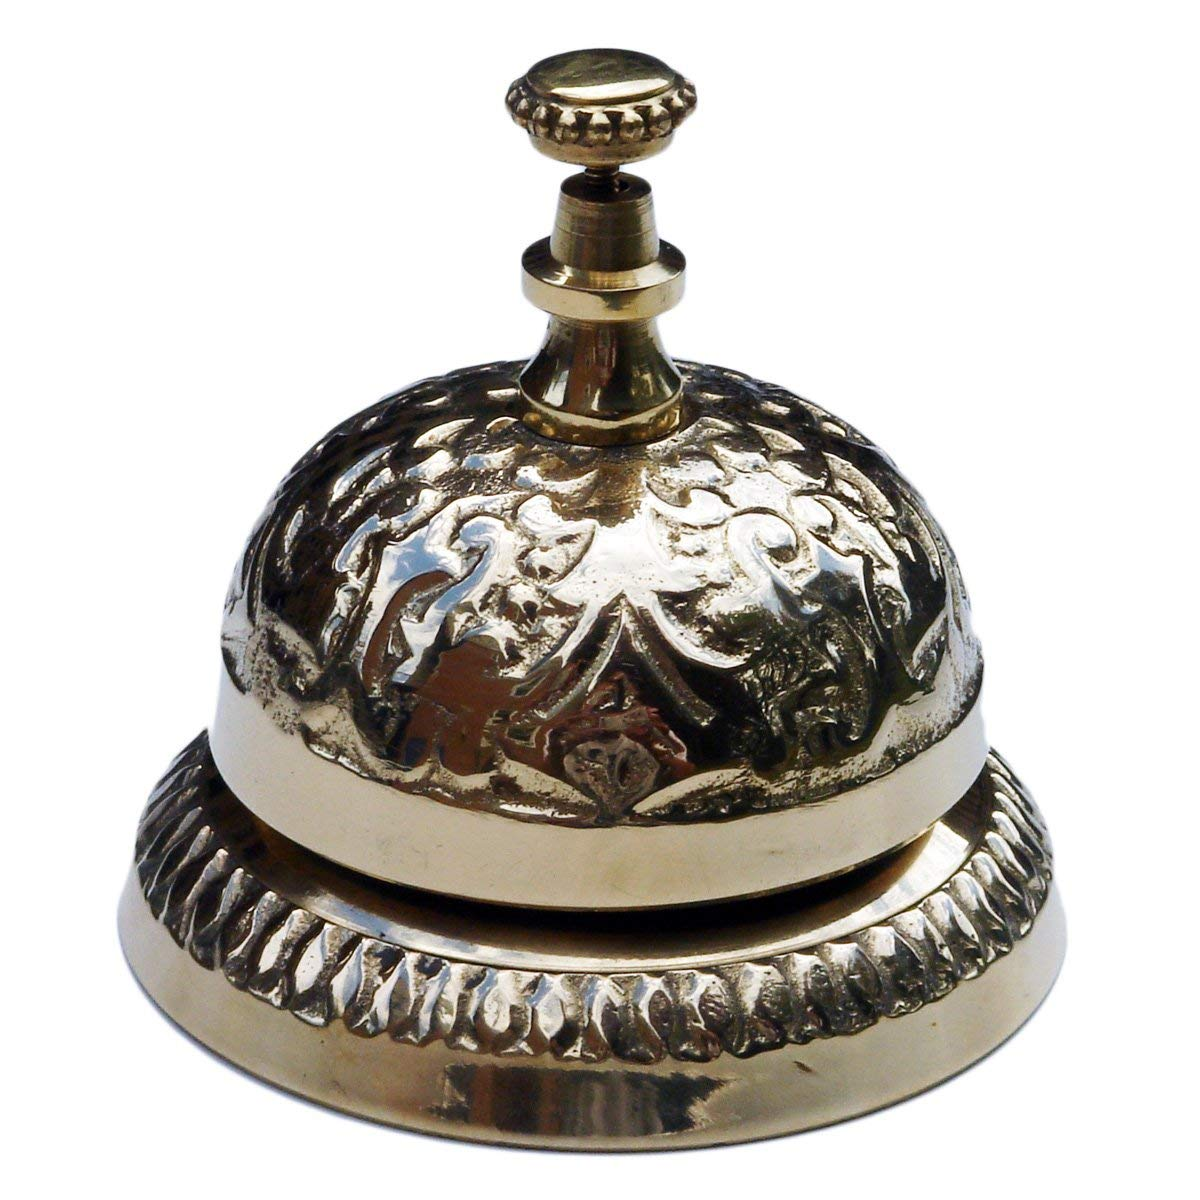 UDL Solid Brass Victorian Style Desk Call Bell Desktop Ring Service Counter Bell Hotel Reception Bell 3 1/4''(D) 2 3/4''(H) by UDL